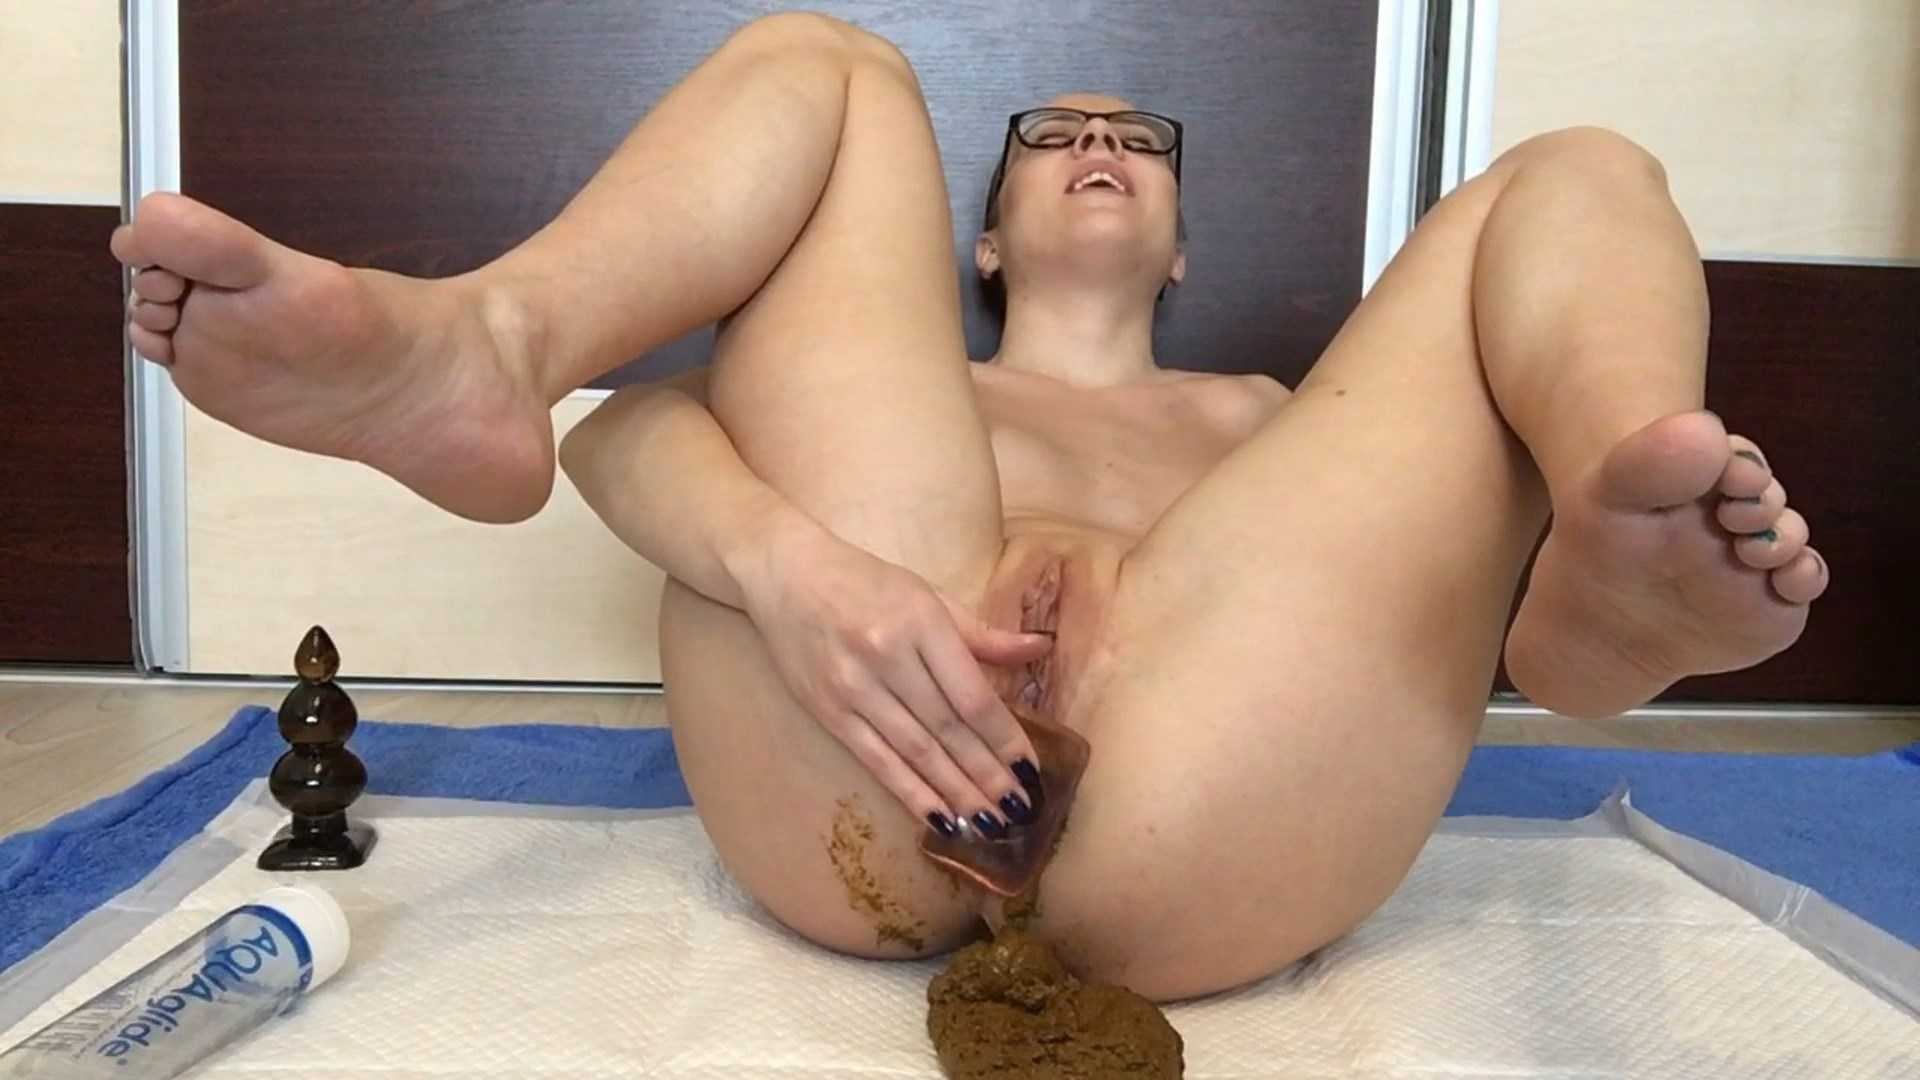 Sucking my full of shit feet – EllaGilbert | Full HD 1080p | June 27, 2017